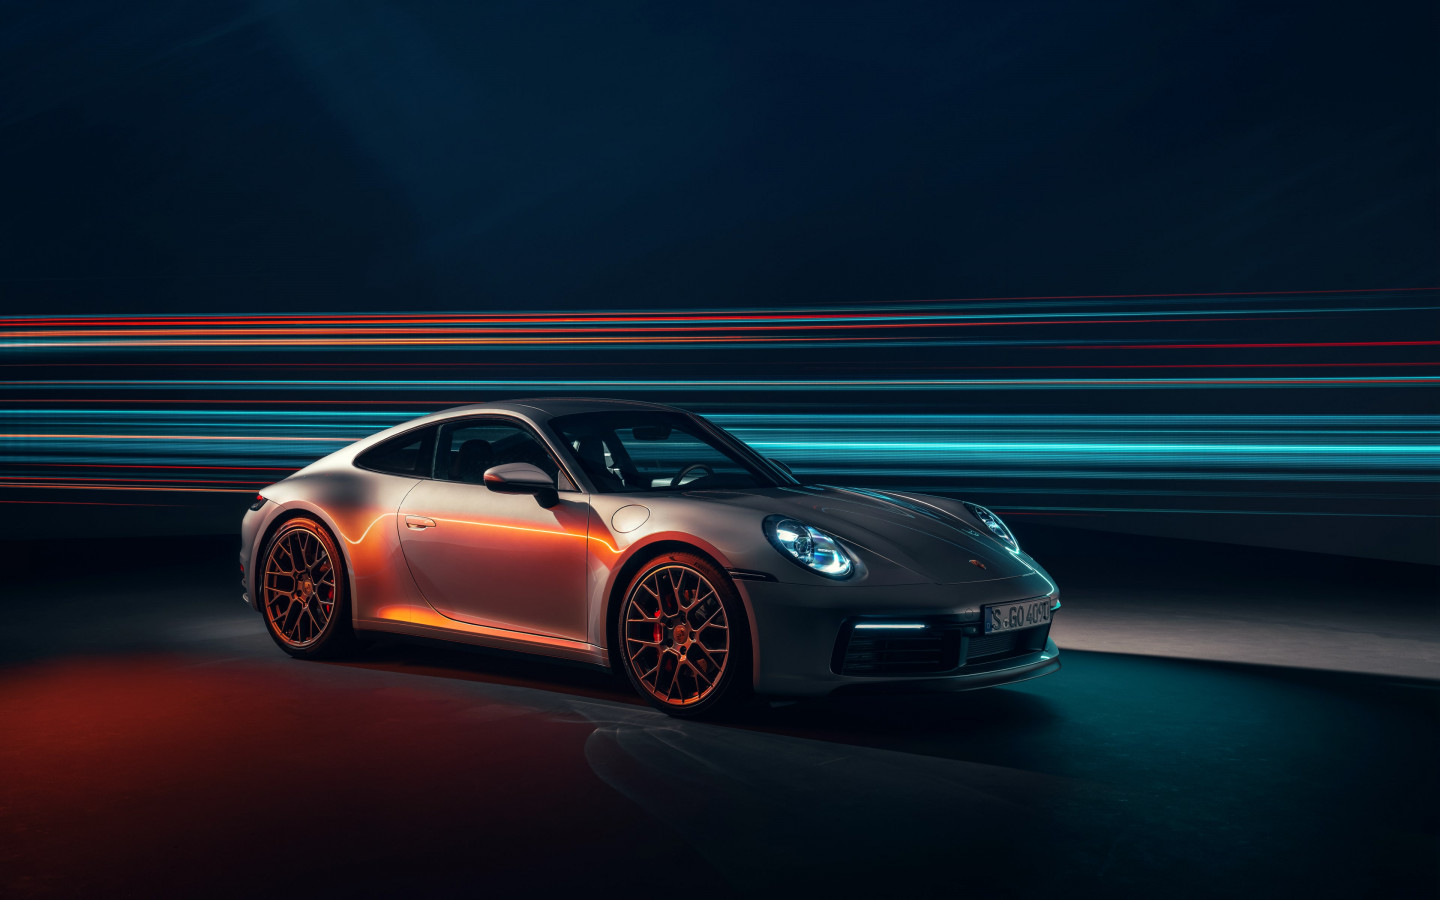 Porsche 911 Carrera 4S wallpaper 1440x900